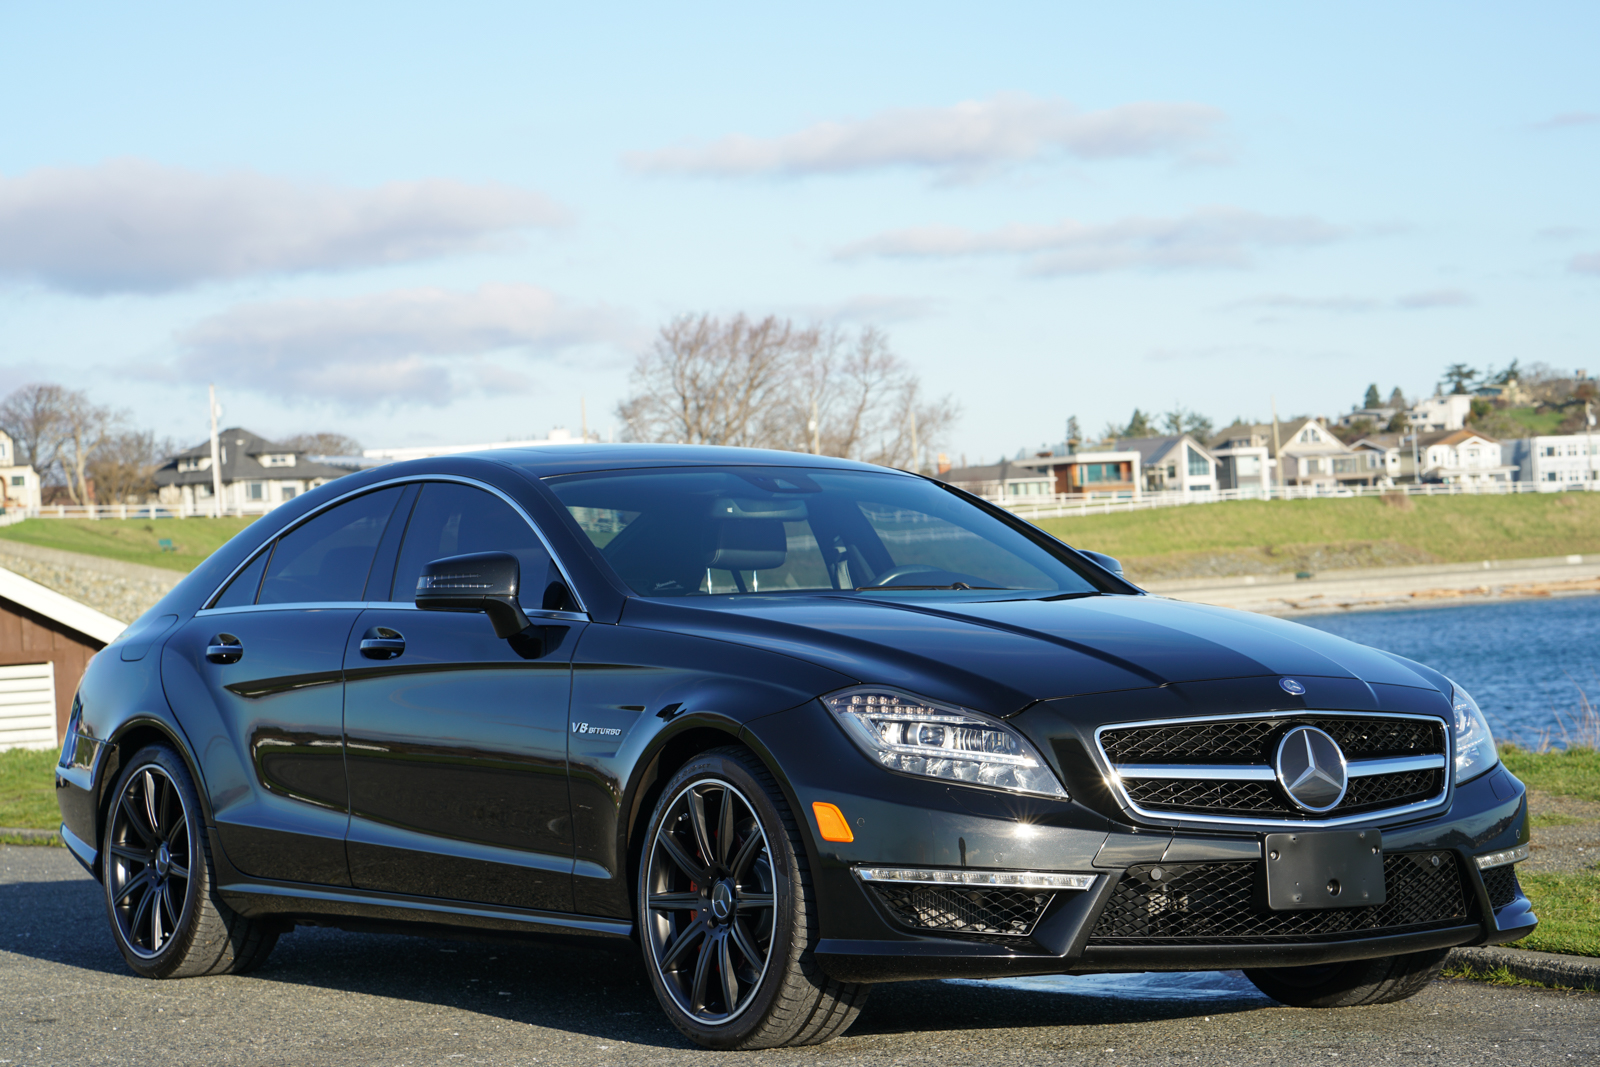 2014 mercedes benz cls 63 amg s model for sale silver for Mercedes benz cls sale